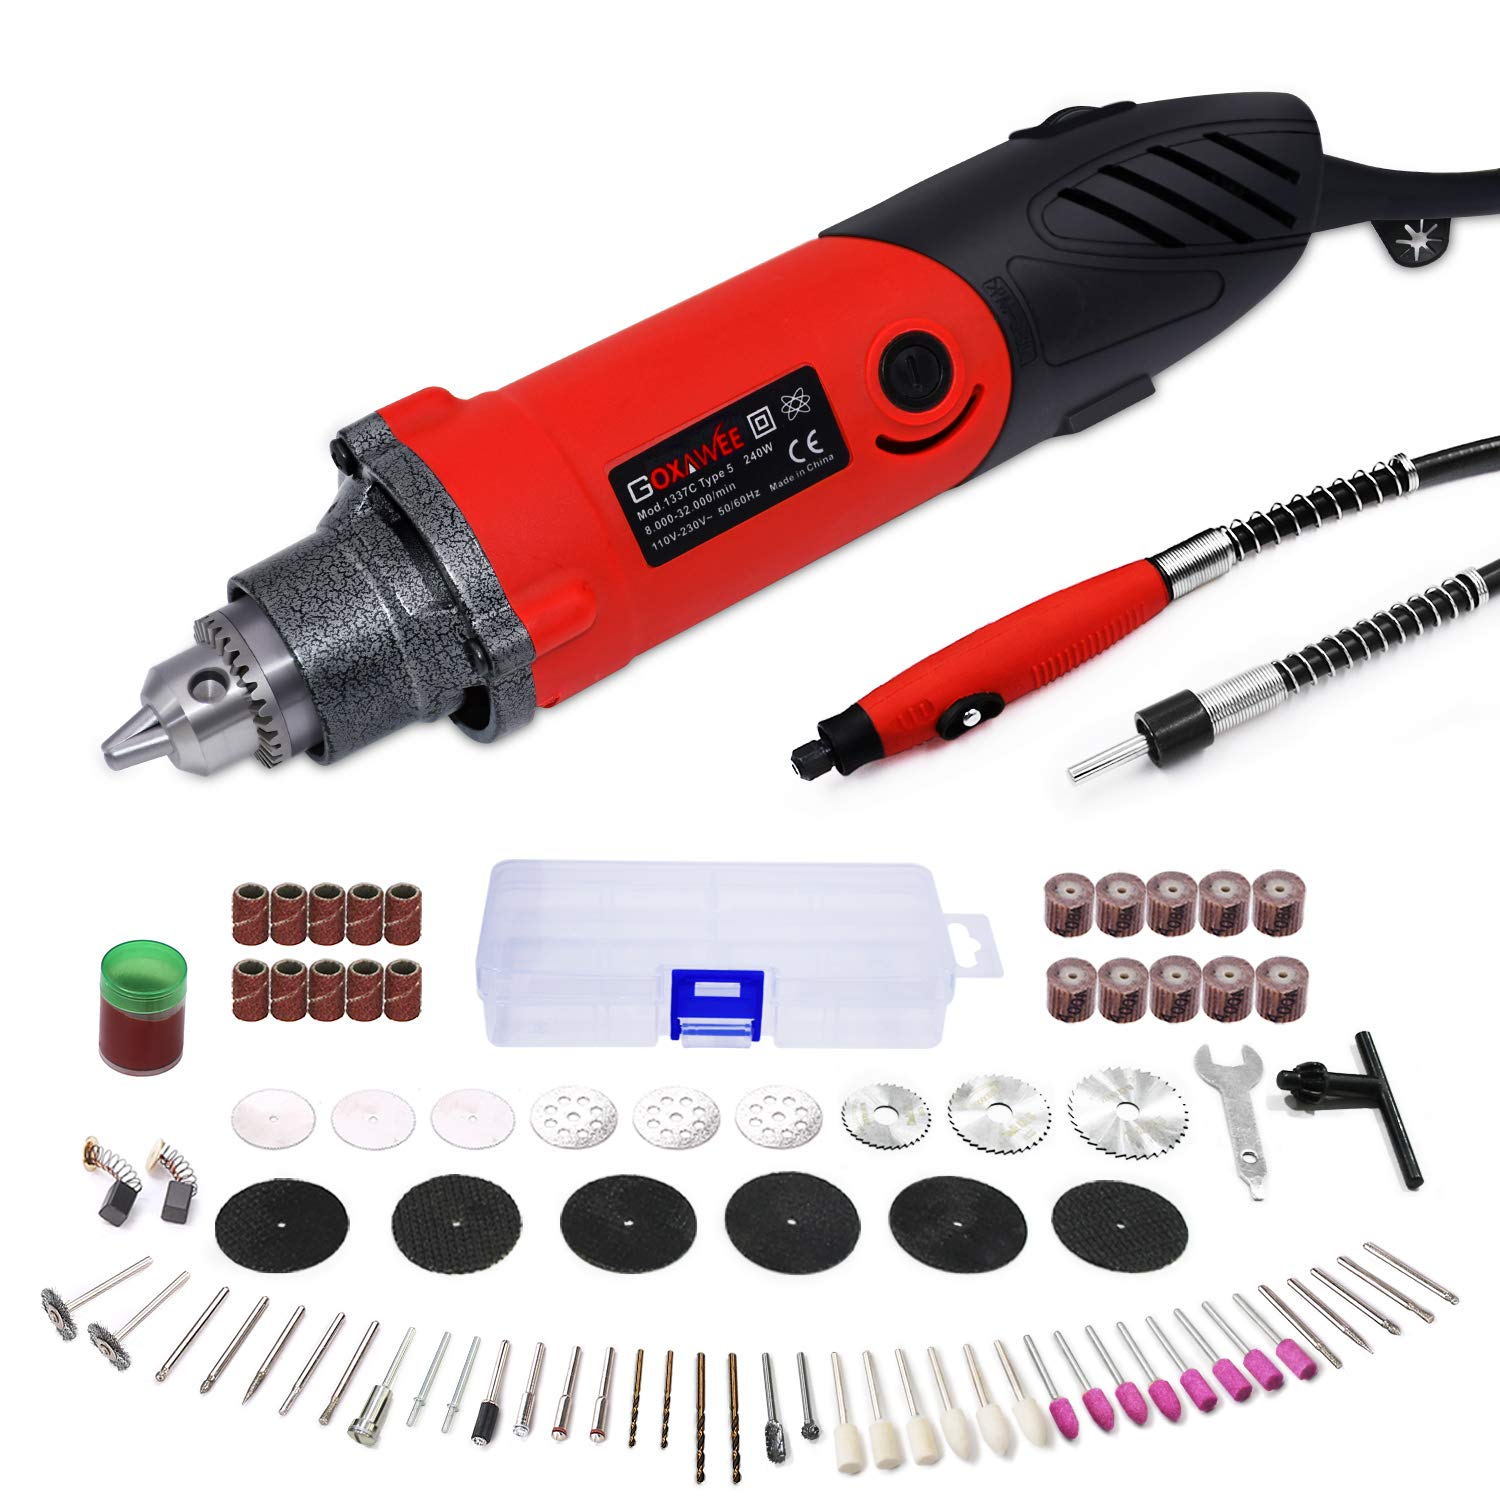 GOXAWEE Rotary Tool Kit 240W/2.2 Amp - 82Pcs Multifunctional Power Tool Set with 1/4 inch Universal 3-Jaw Chuck (0.5-6 mm Collet), 6 Step Variable Speed, Advanced Flex Shaft & Versatile Accessories